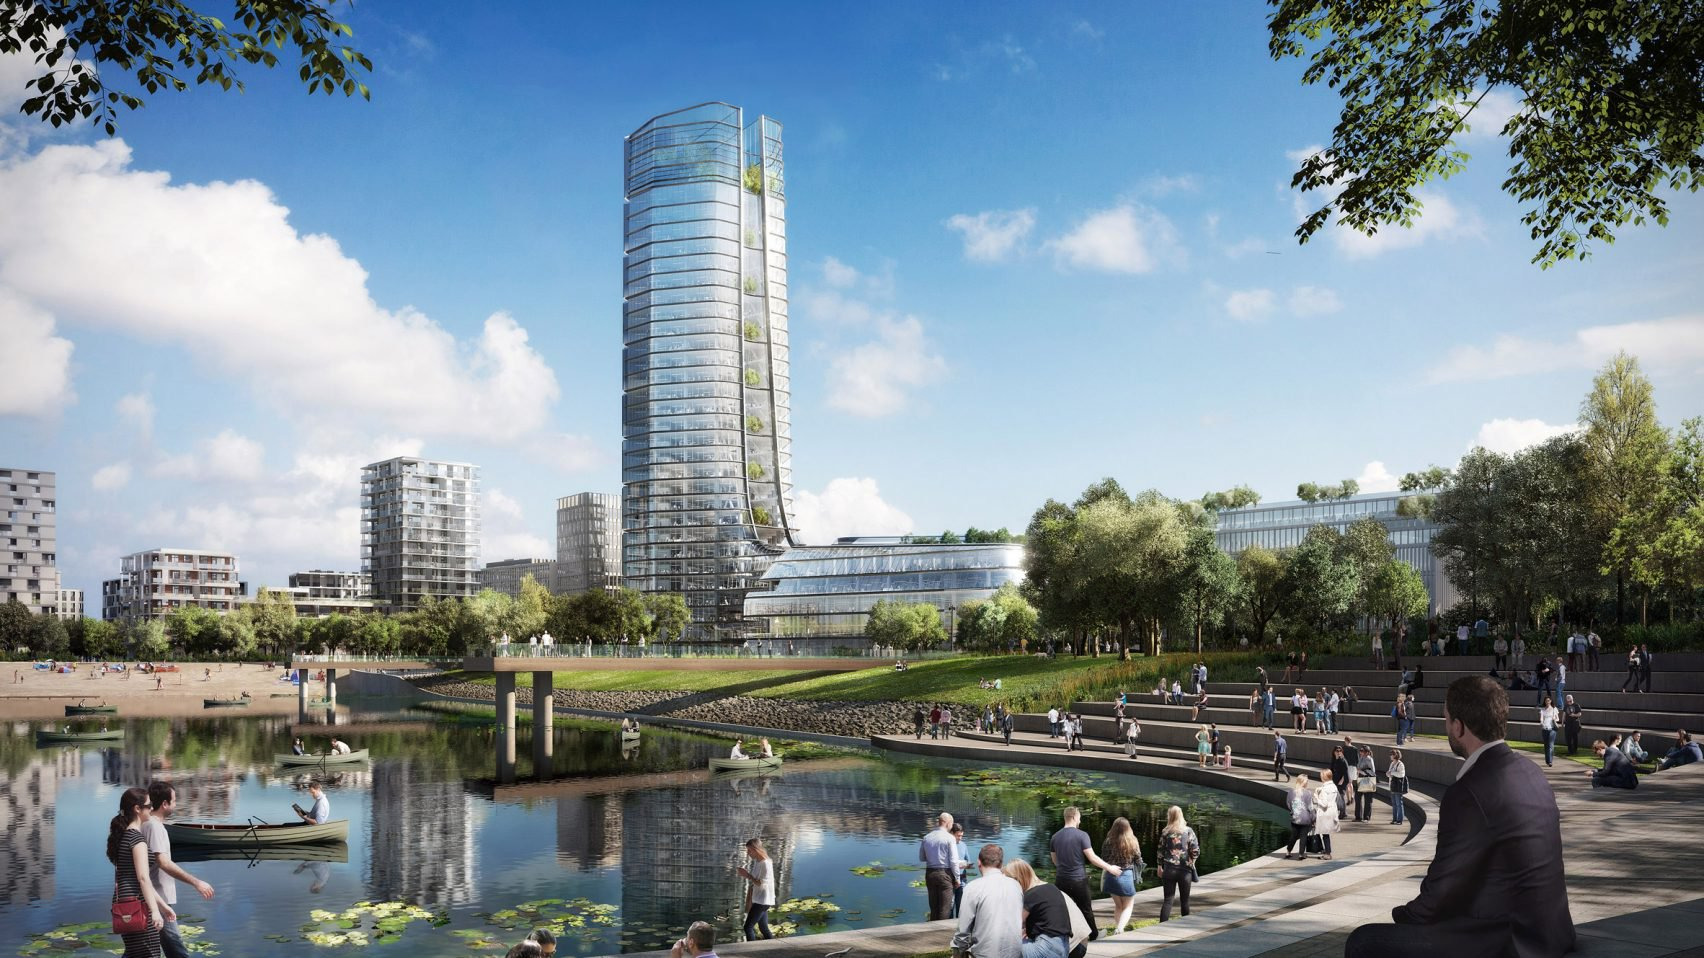 Foster + Partners' Budapest tower will be built despite city's new skyscraper ban